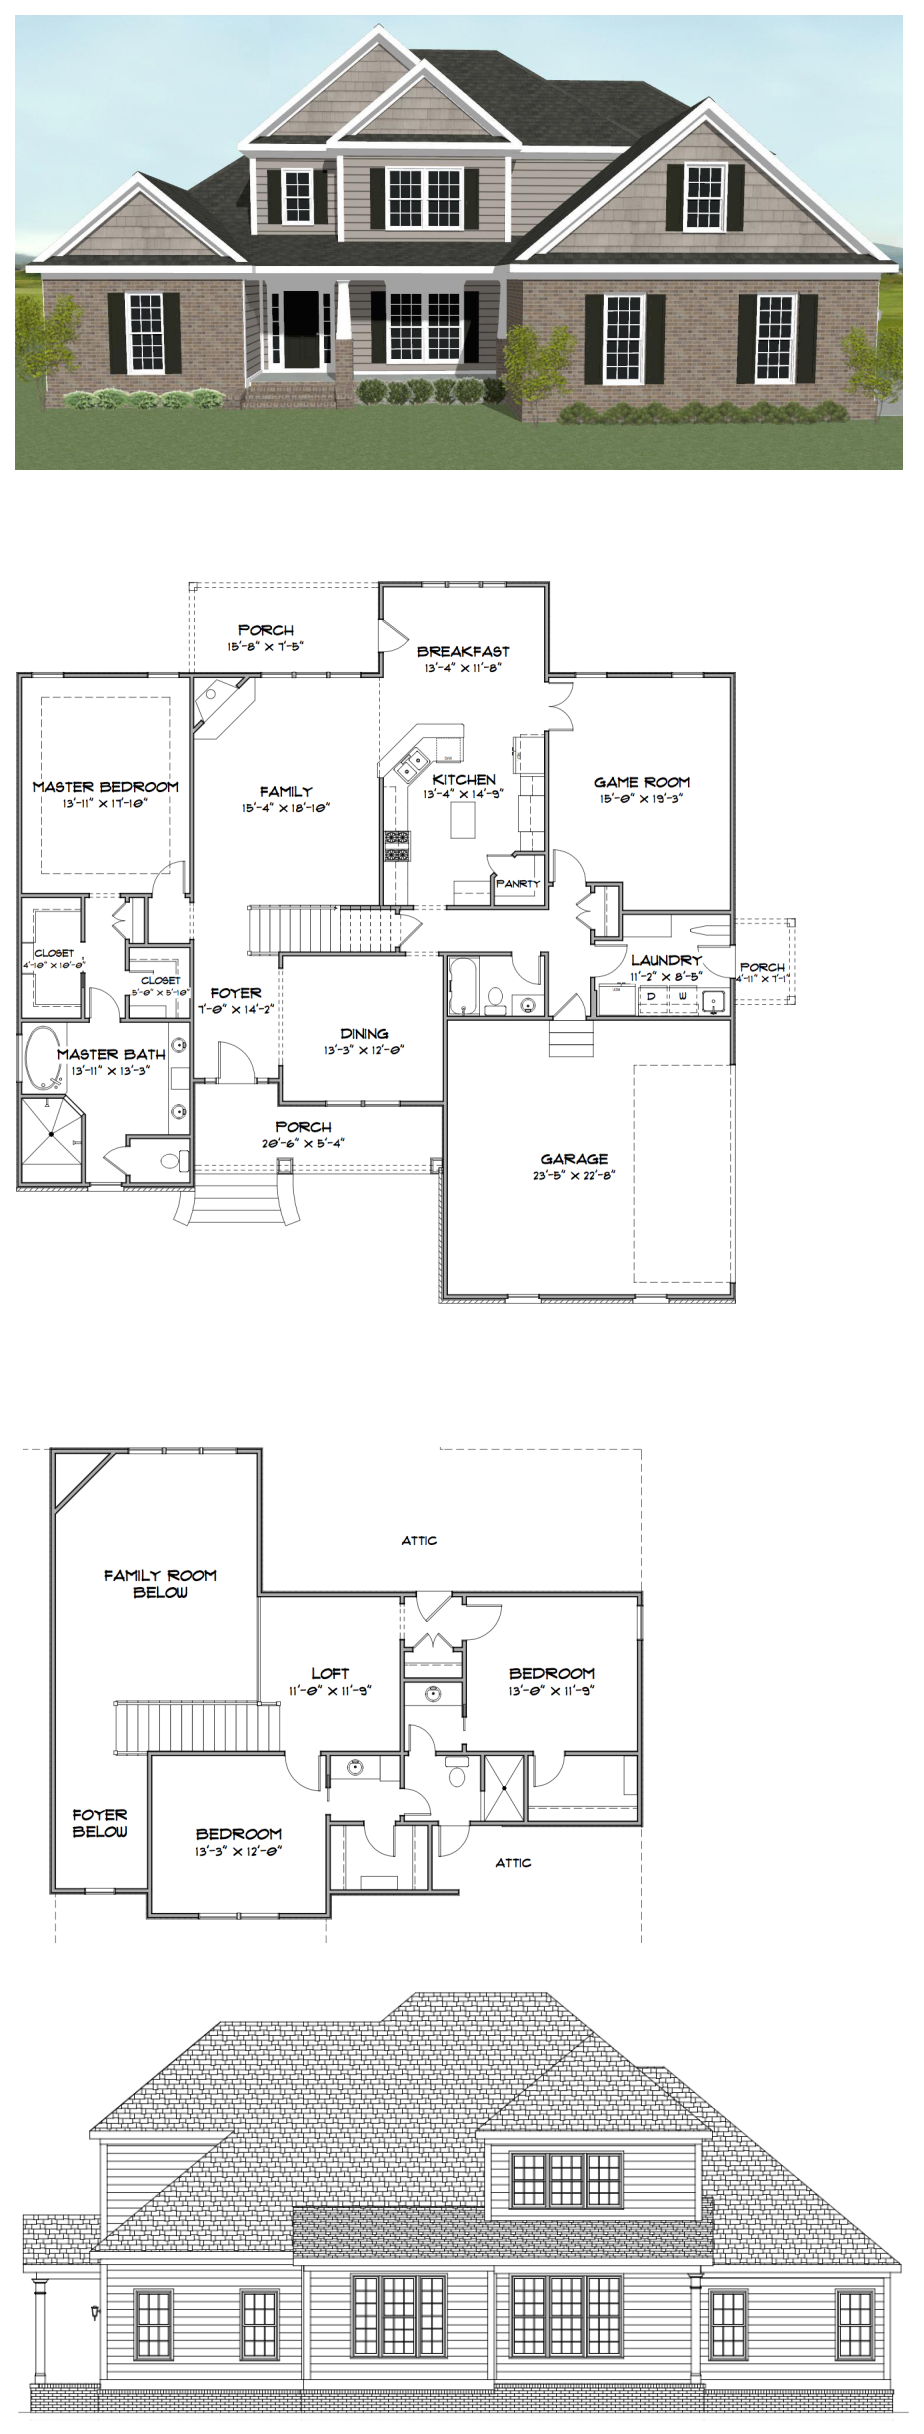 Plan SC2847: ($940) 3 bedroom 3 bath home with a game room (which ...